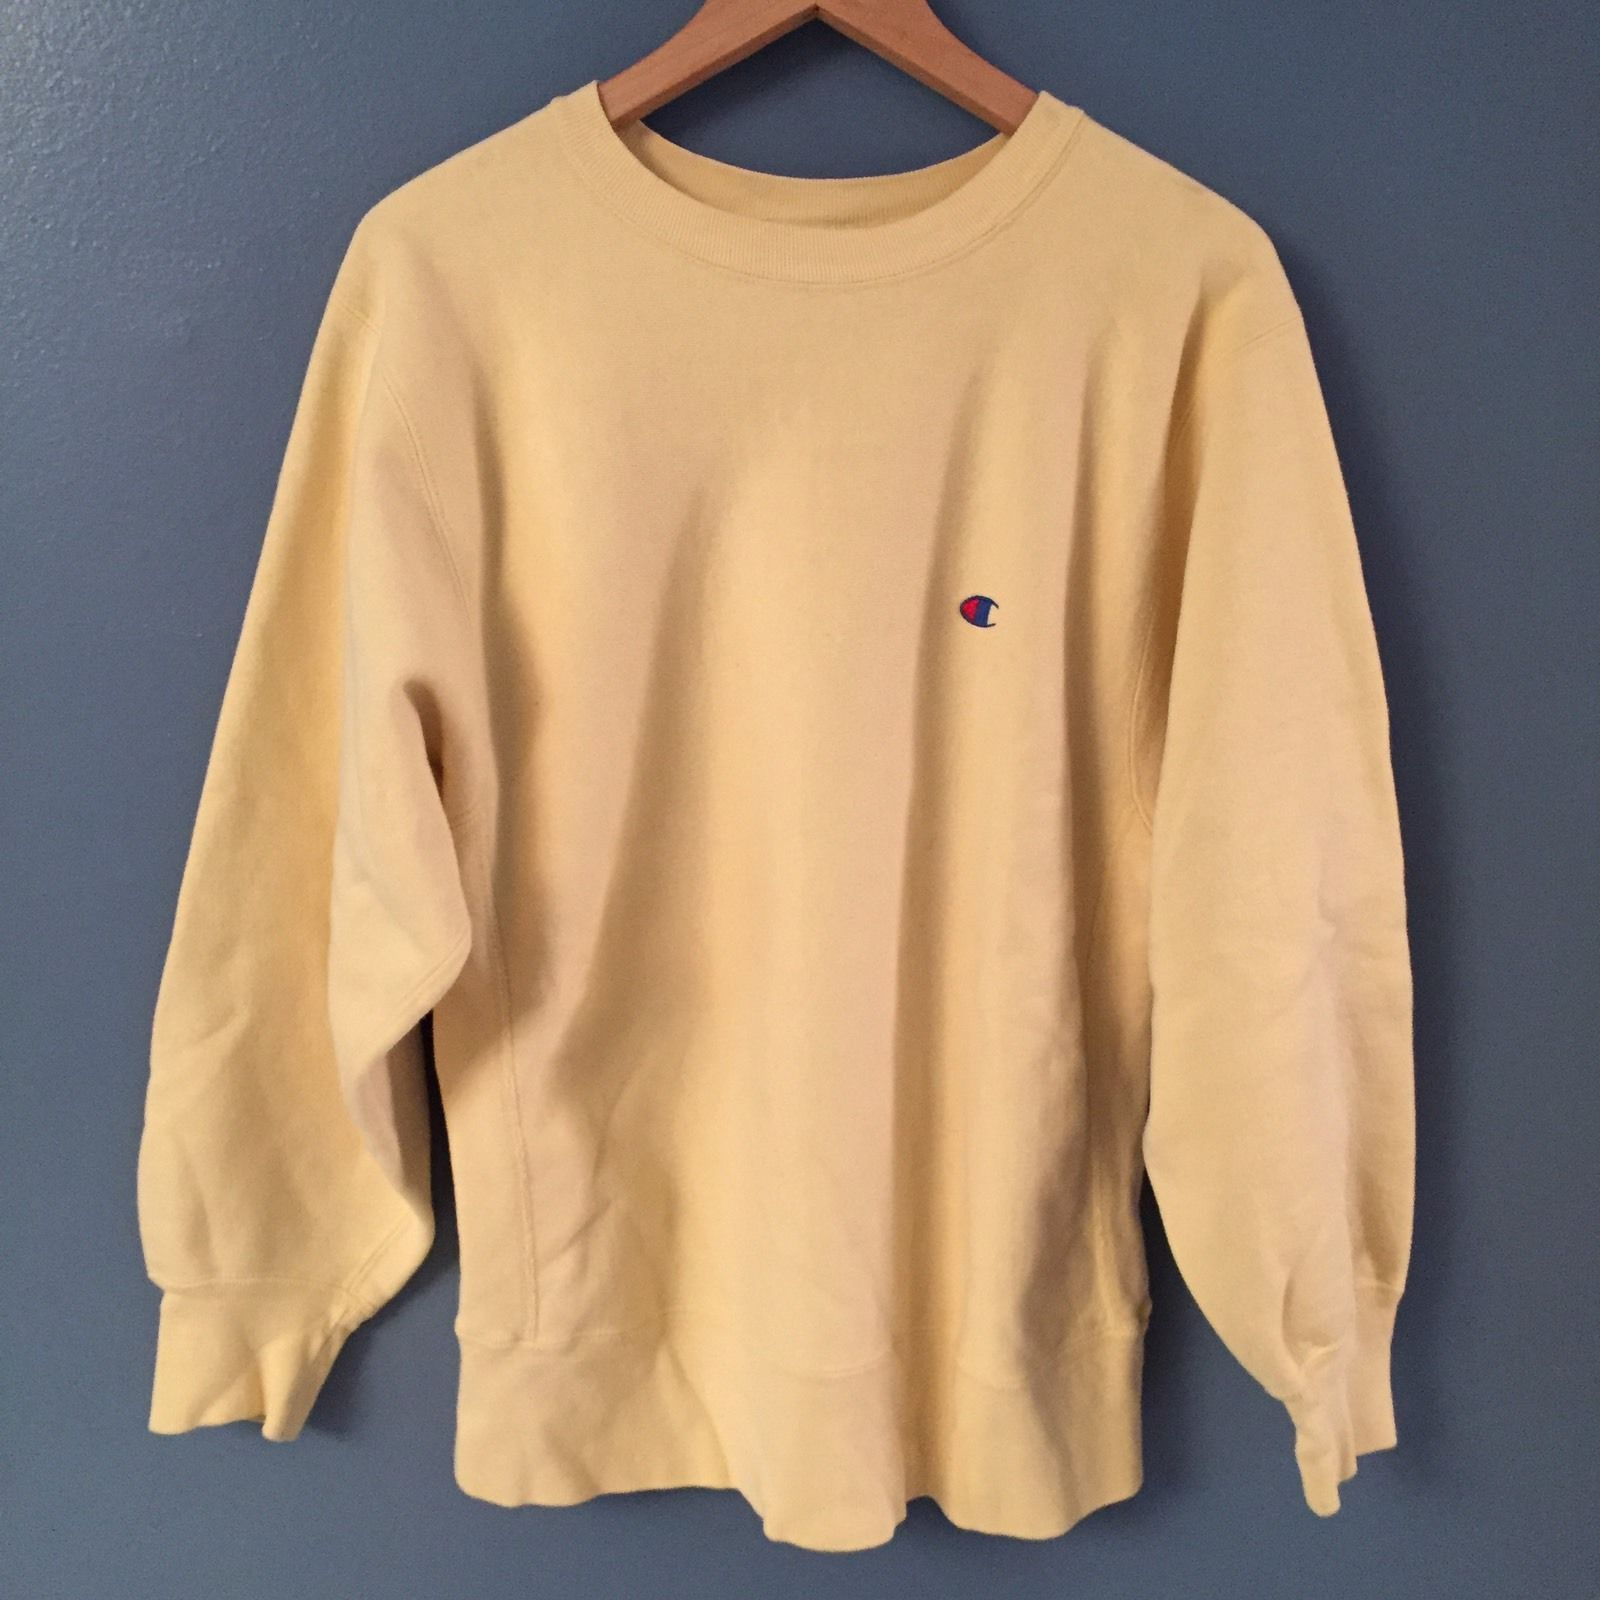 Vintage Rare Light Yellow Cream Champion Reverse Weave